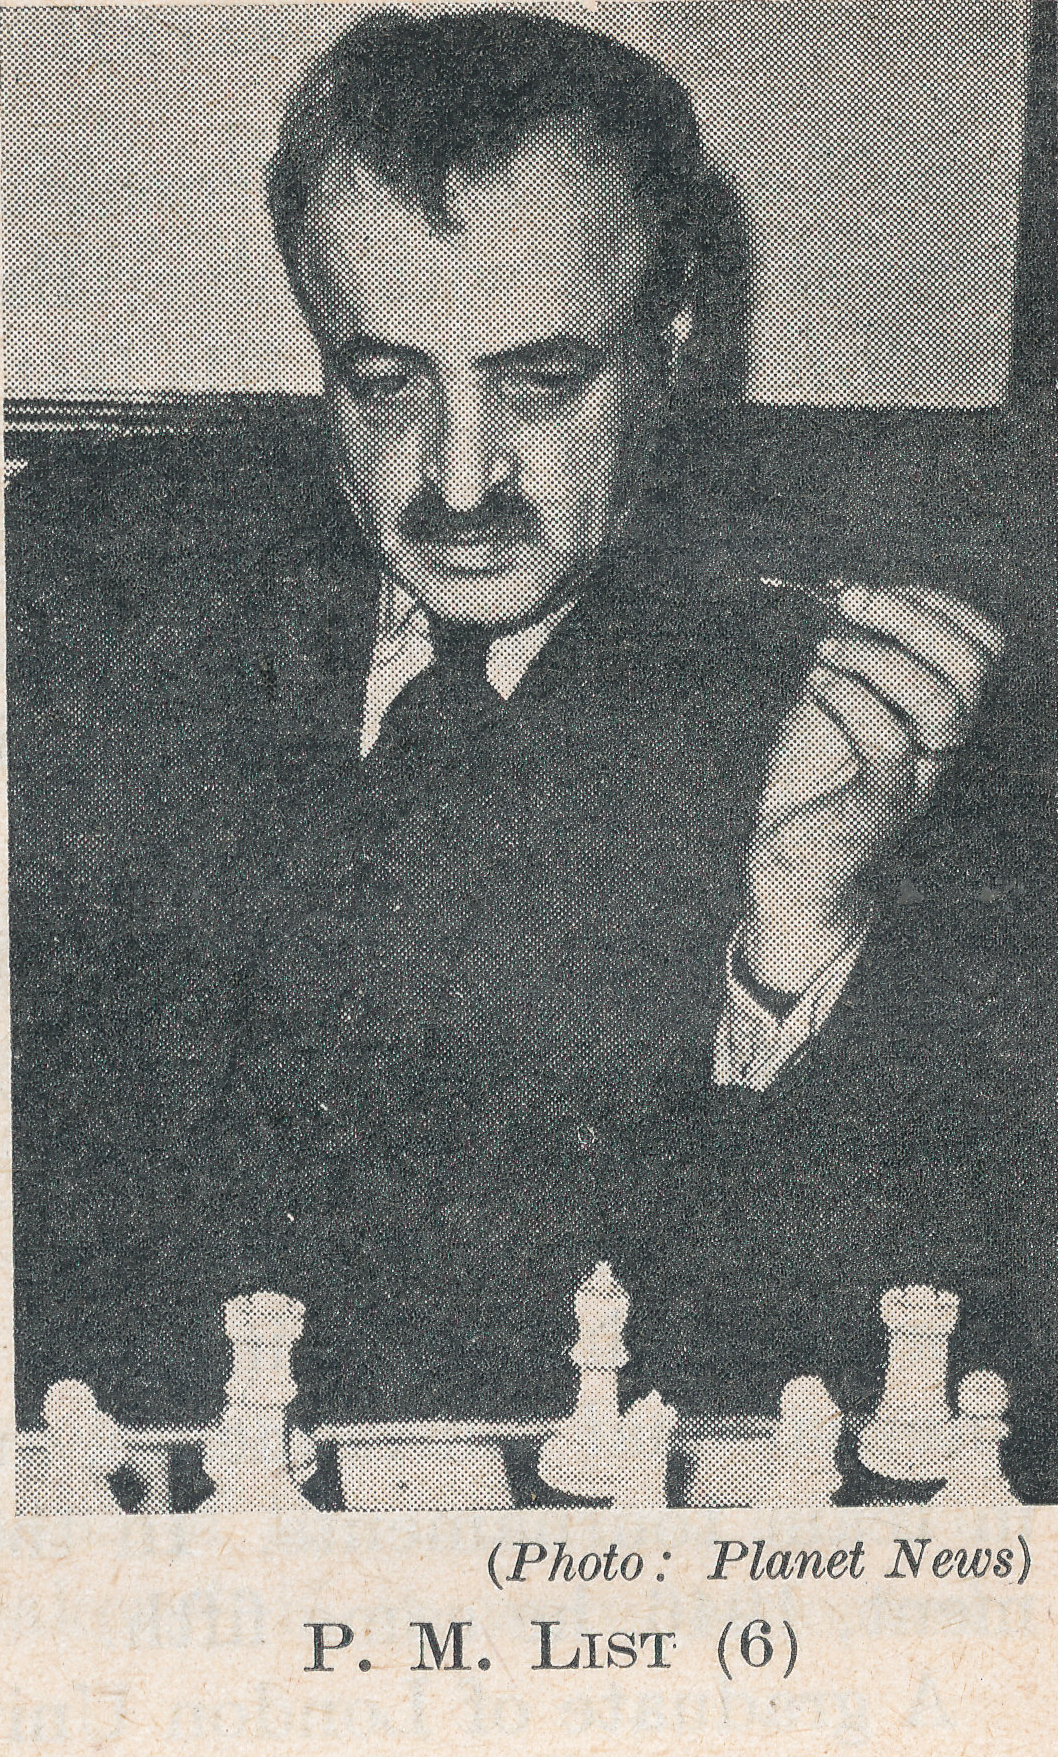 Dr. Paul List (09-ix-1887 09-ix-1954). Source : The Anglo-Soviet Radio Chess Match.